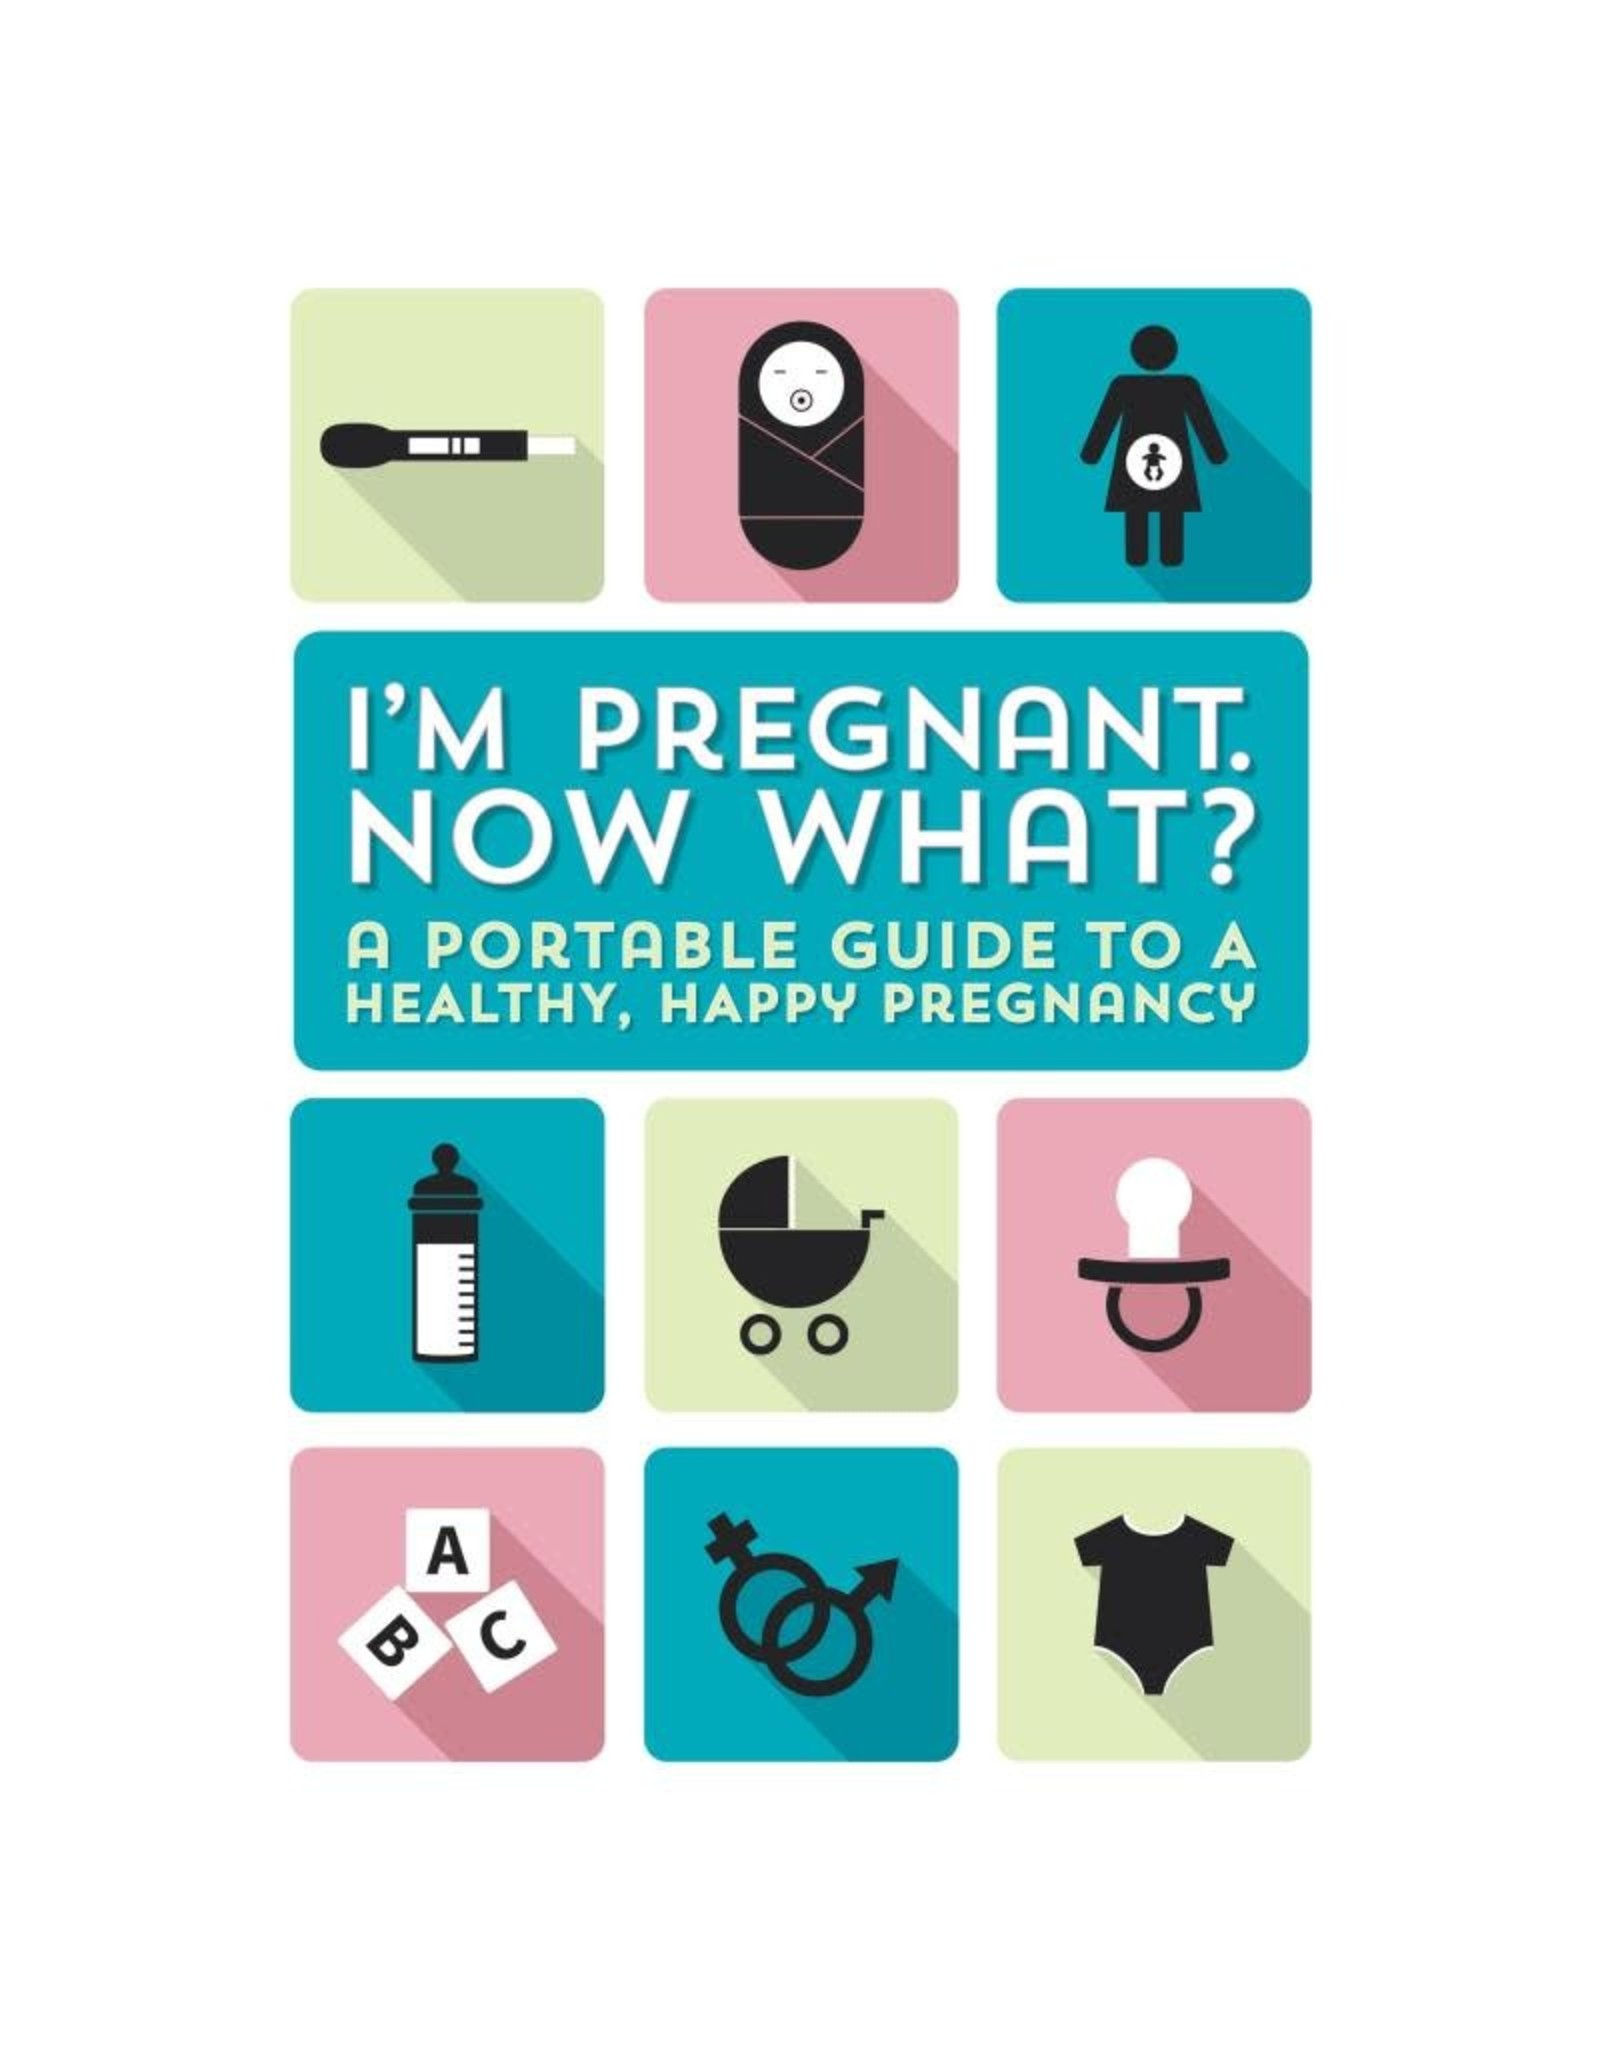 Peter Pauper I'm Pregnant- Now What?